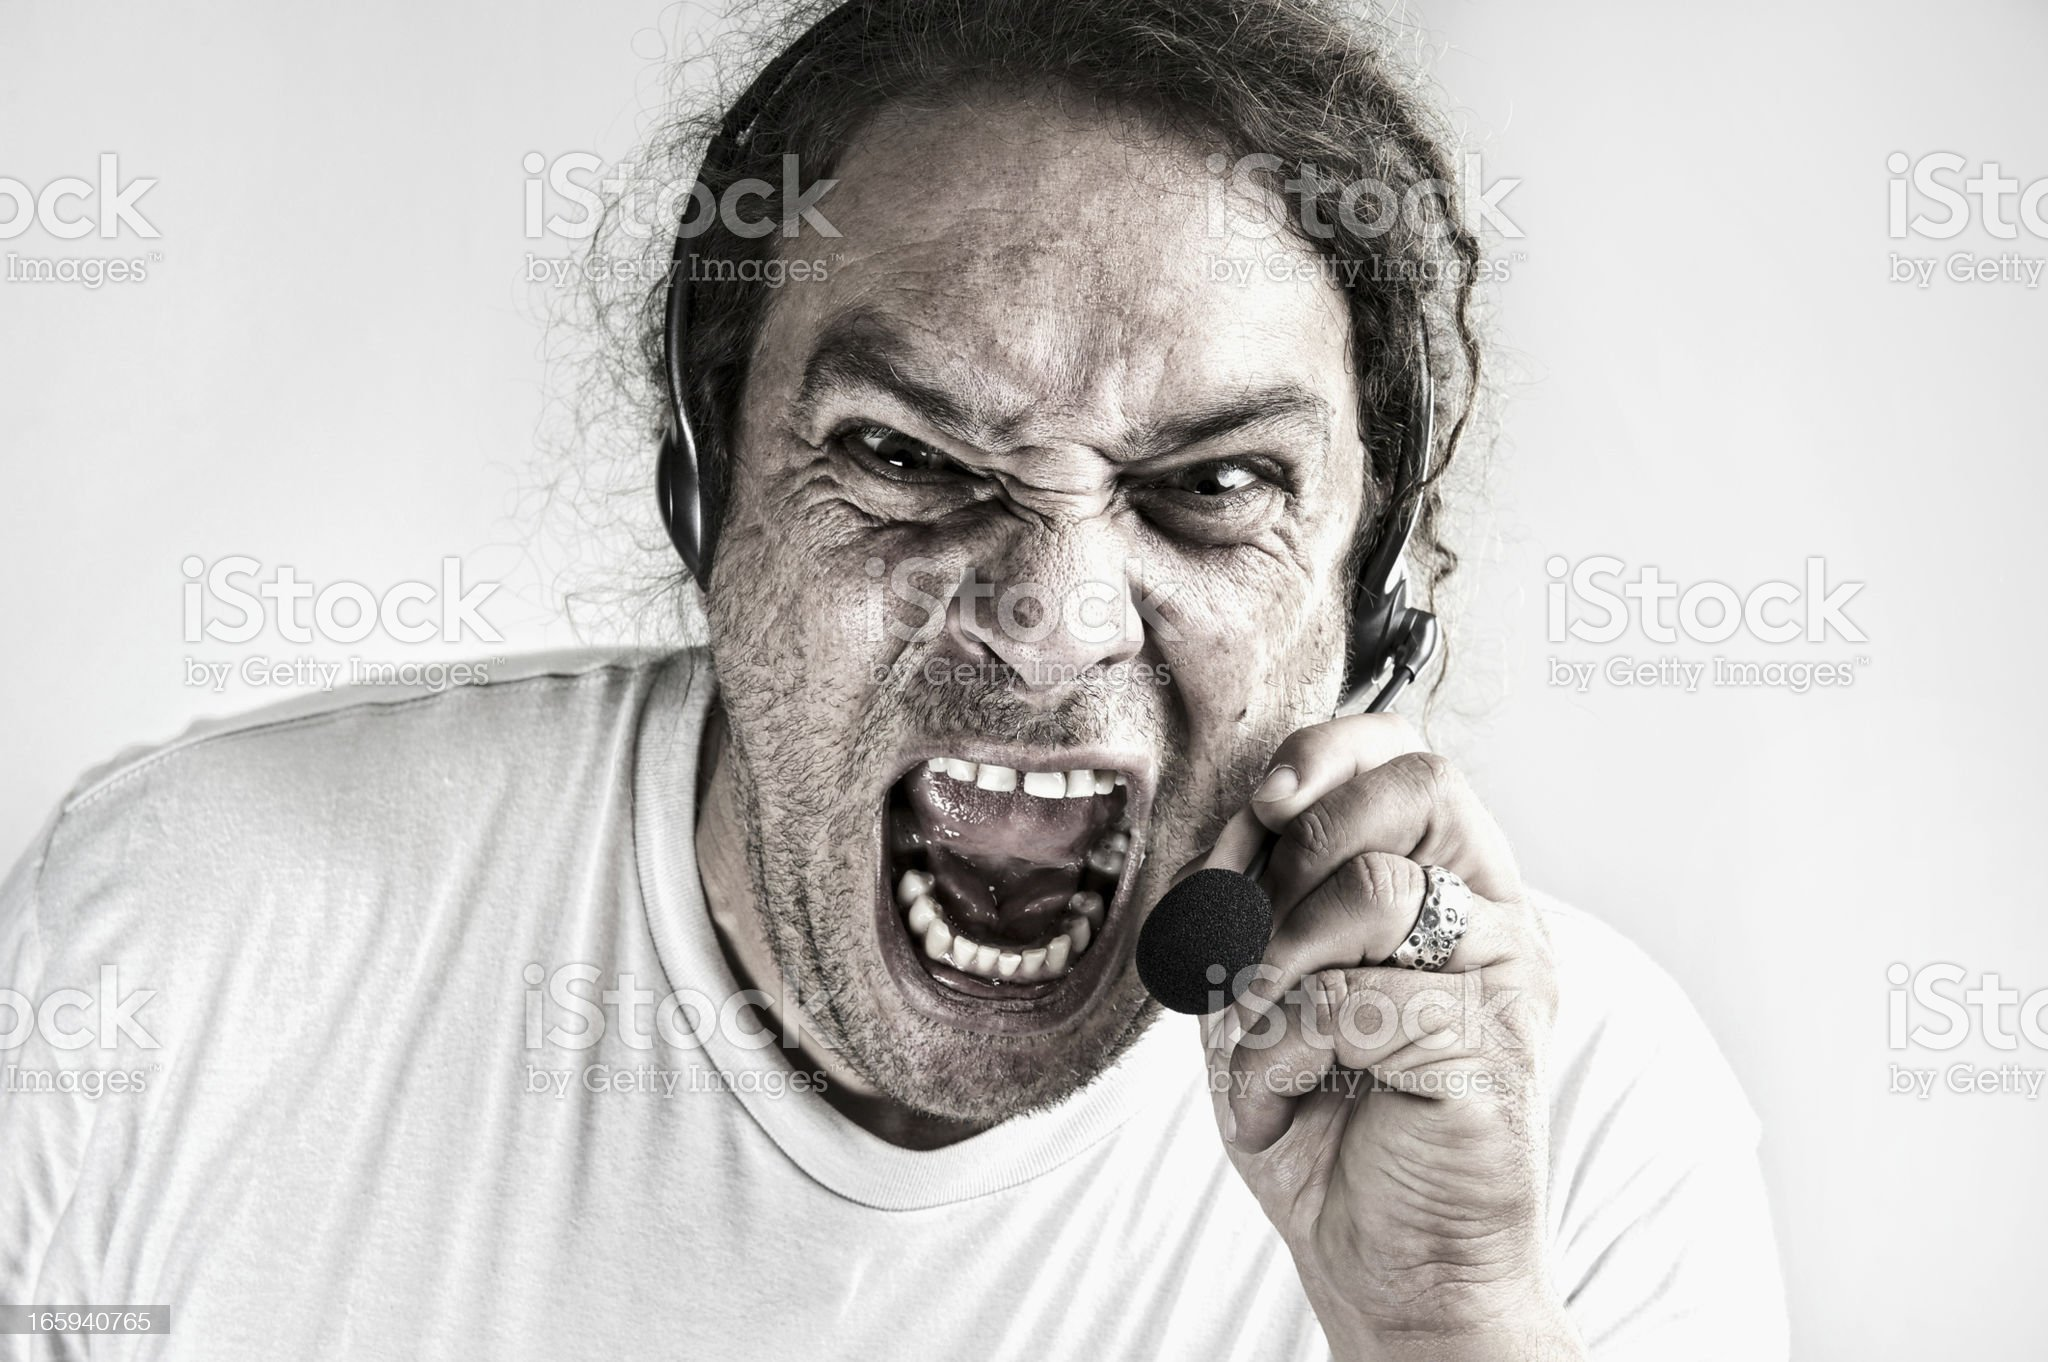 Angry Call Centre Person royalty-free stock photo